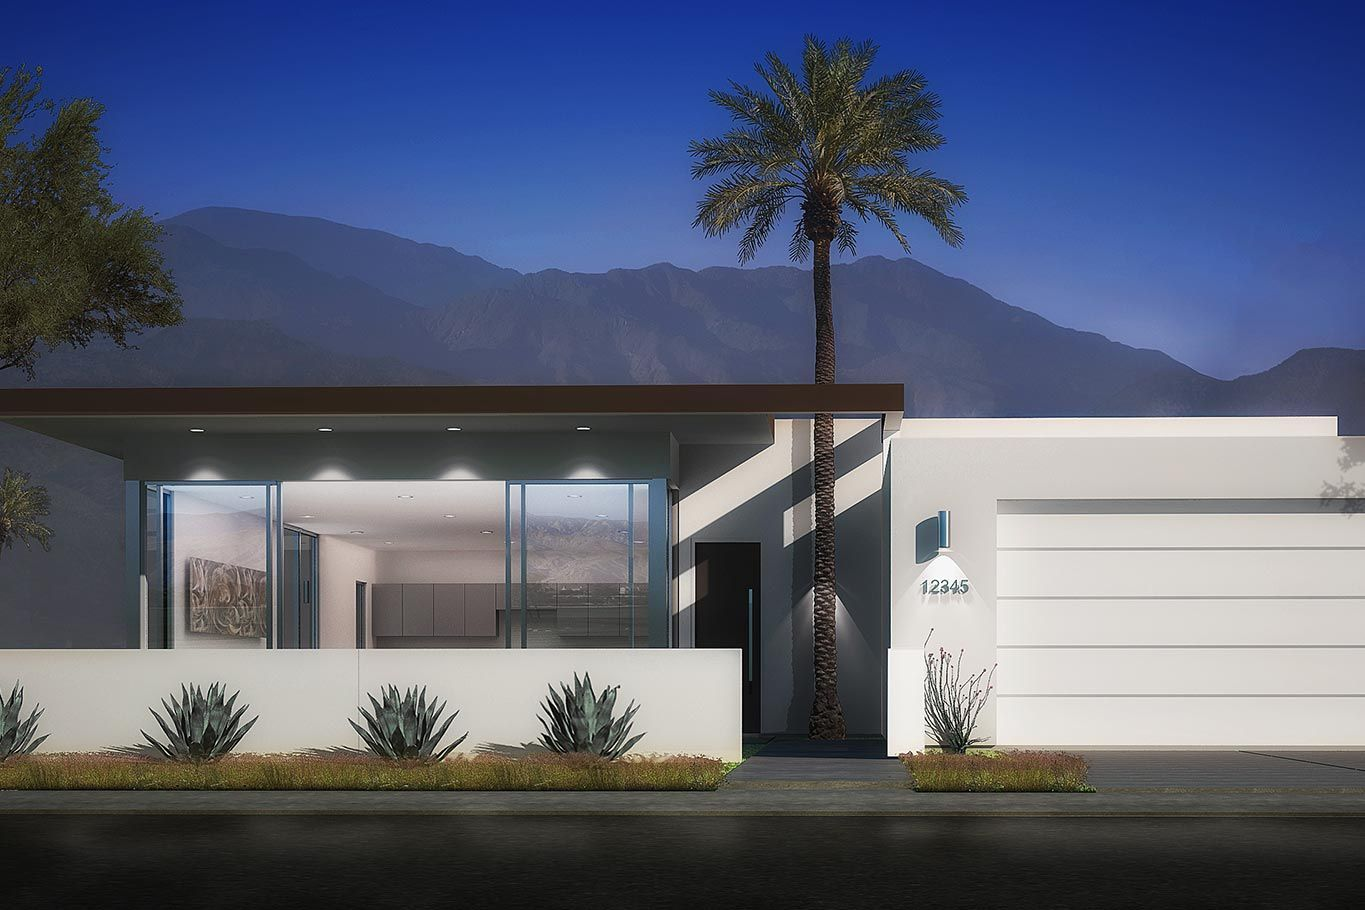 Alta verde group alta verde escena panorama 1051412 for Palm springs for sale by owner